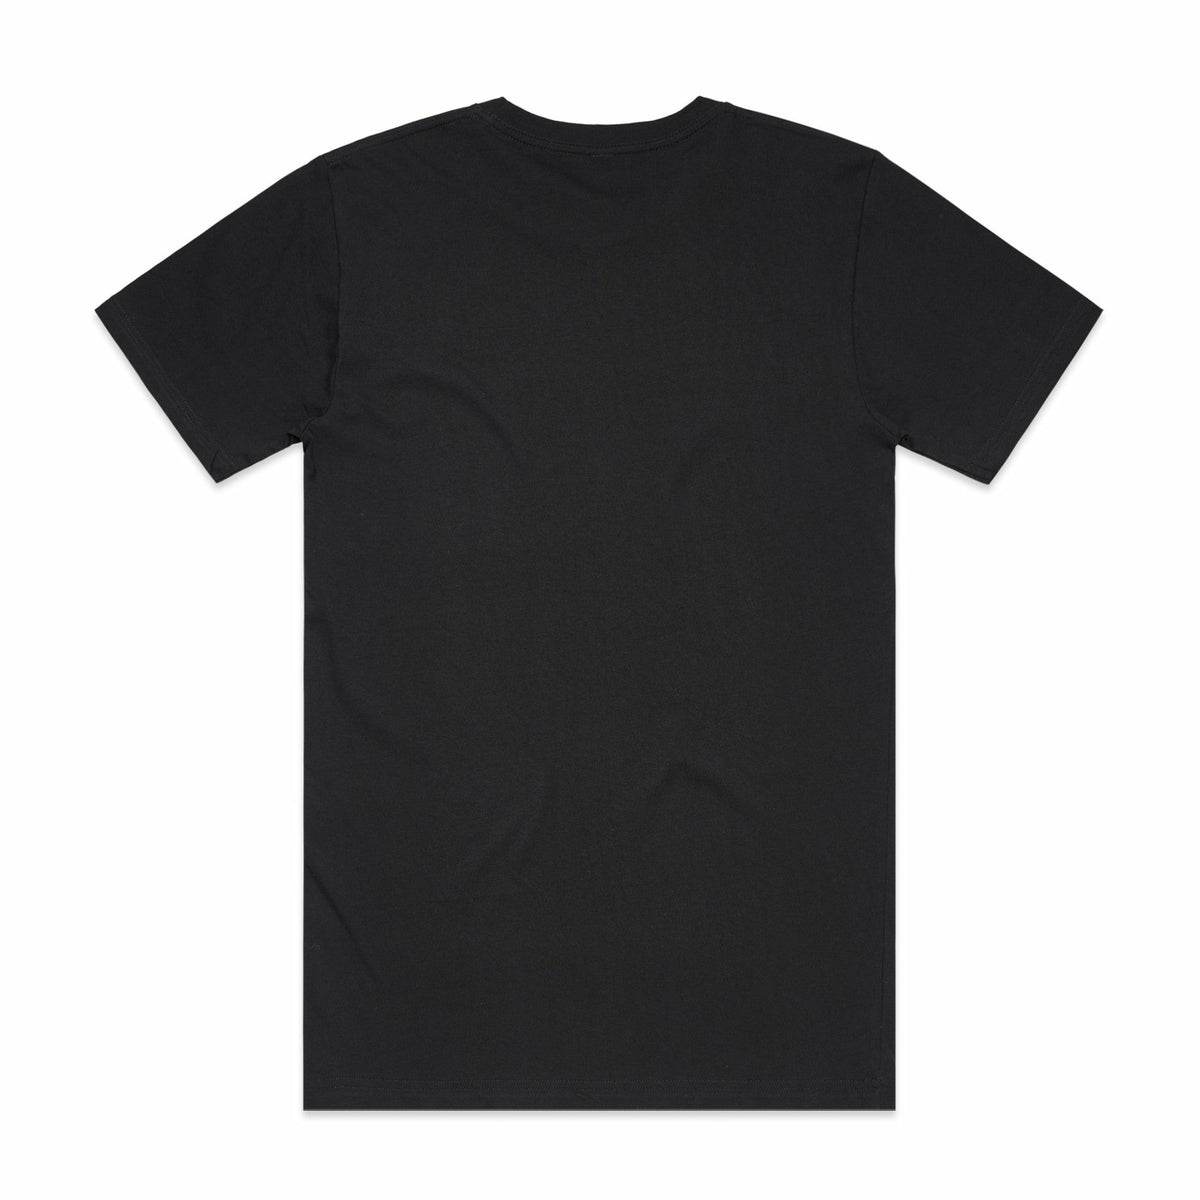 AS Colour Black Cotton Tee